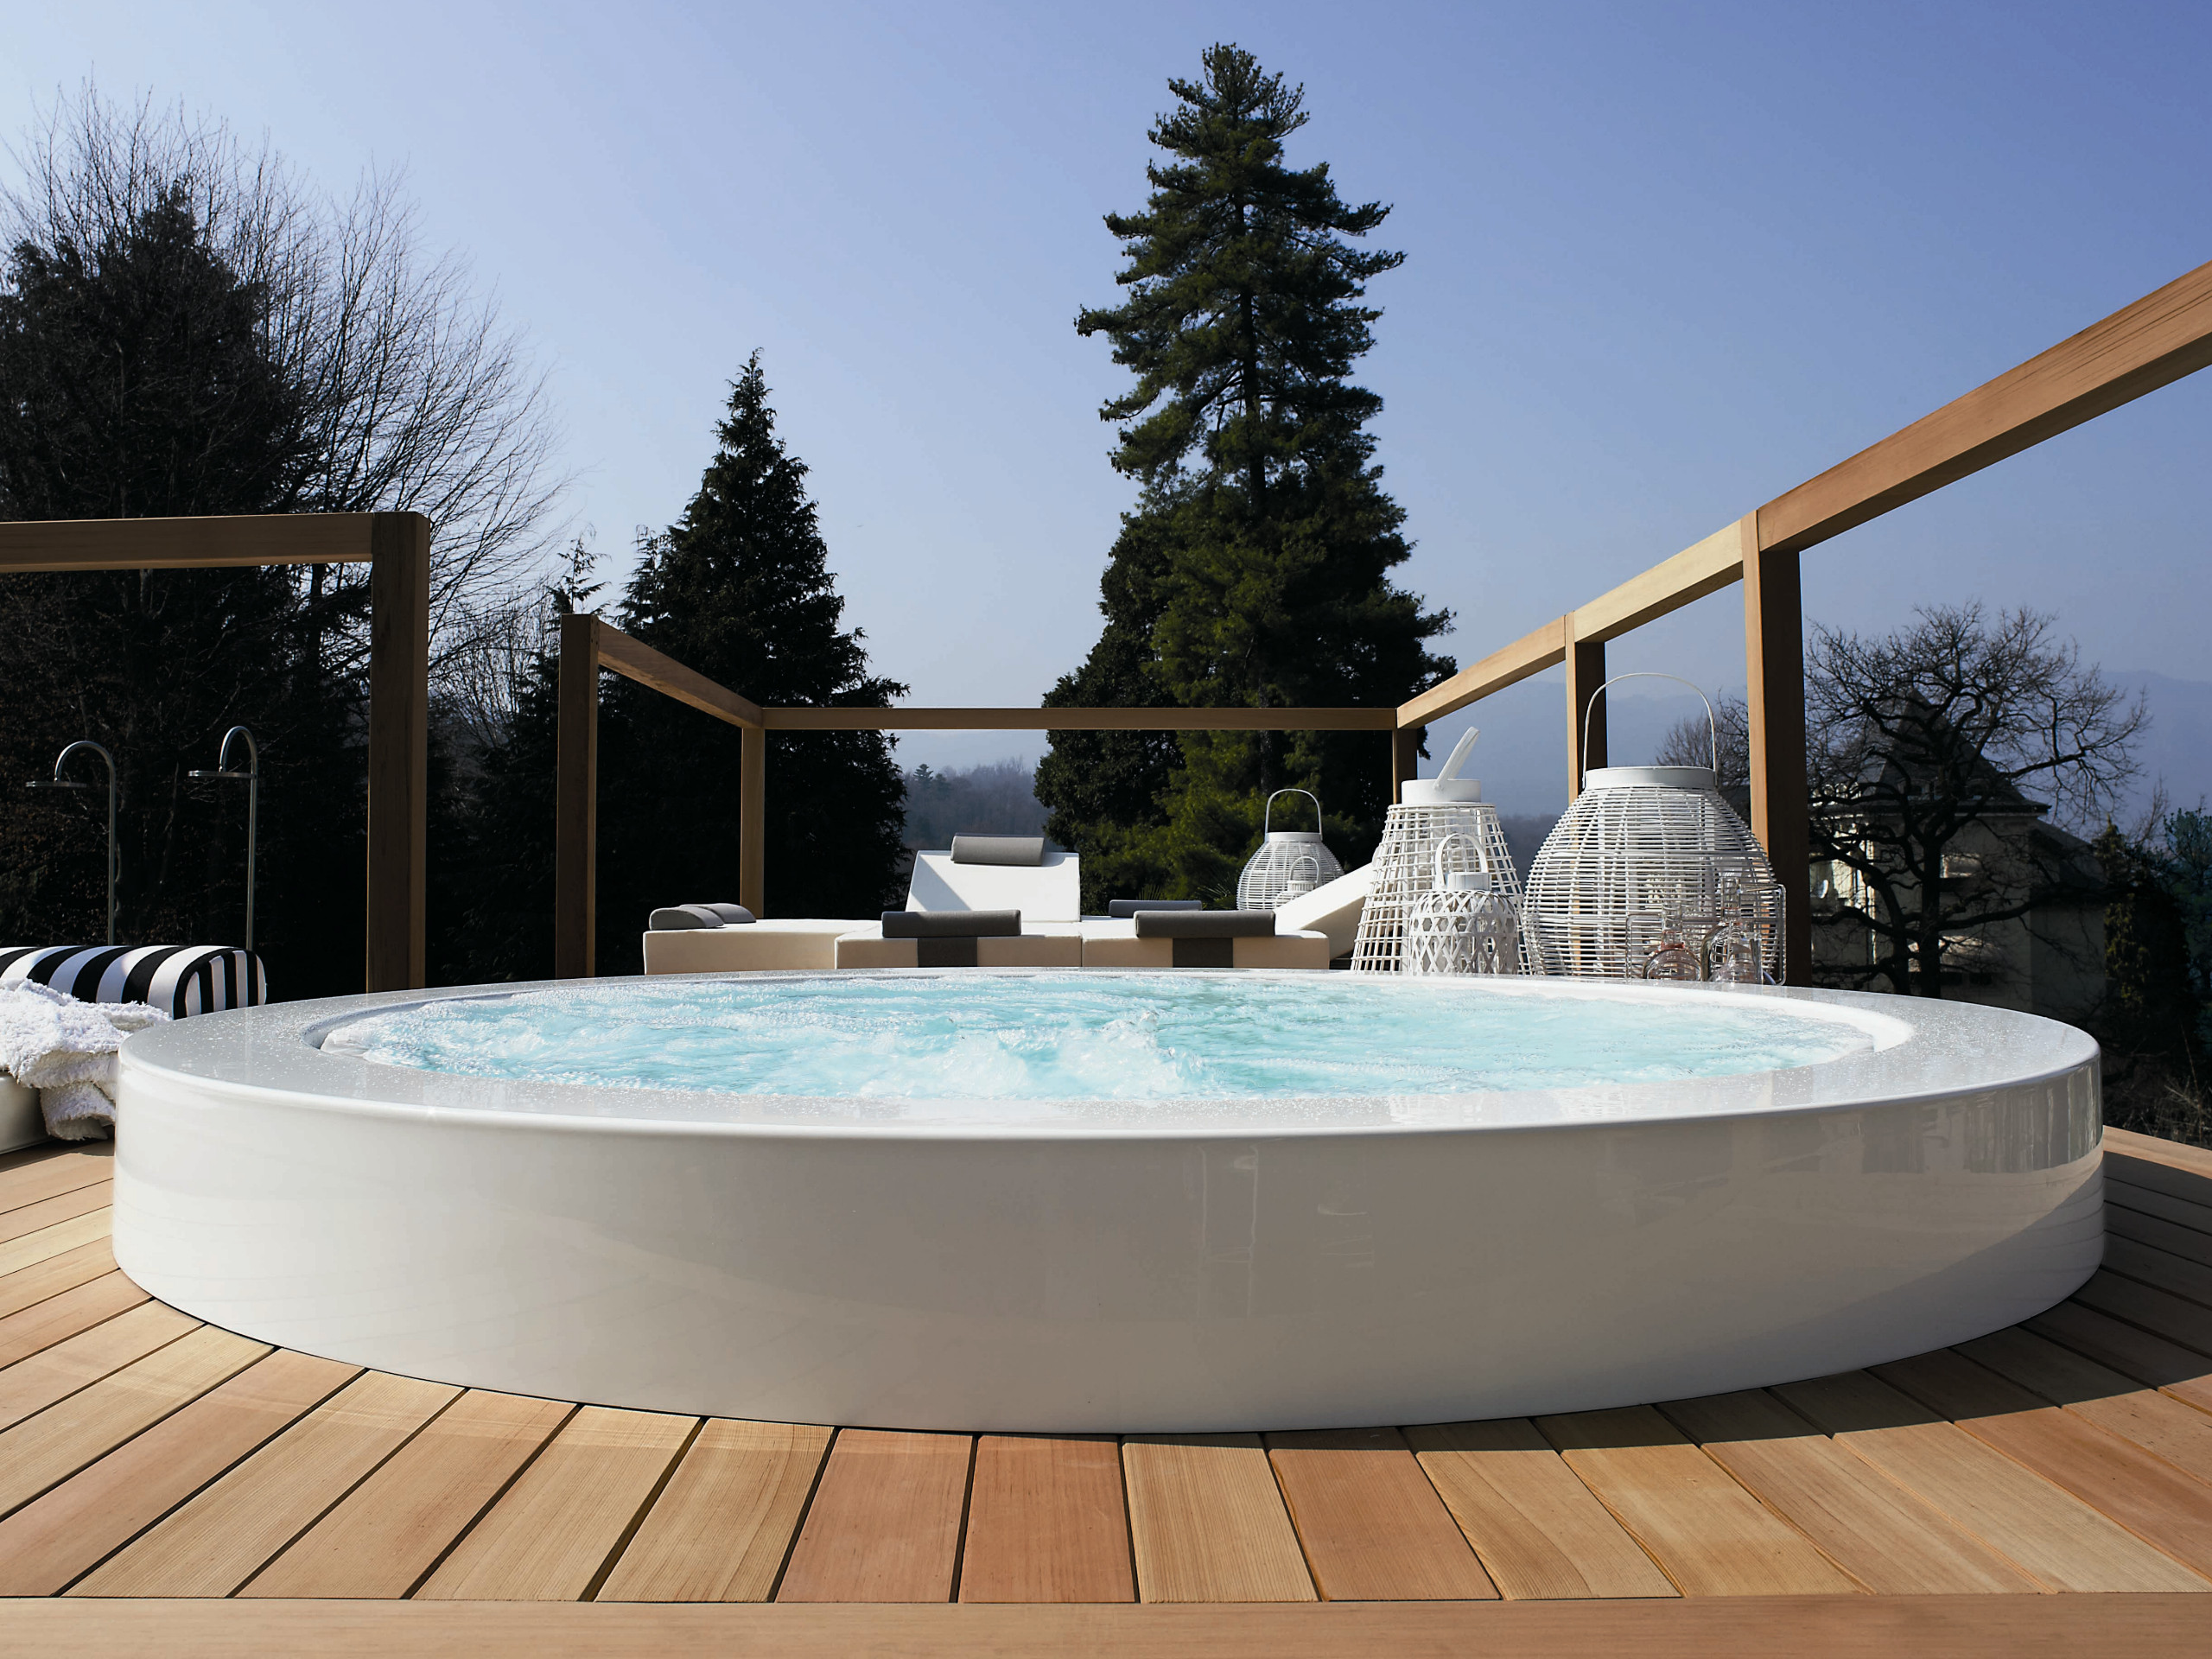 Best ideas about Outdoor Hot Tubs . Save or Pin Overflow outdoor hot tub MINIPOOL Built in hot tub by Kos Now.